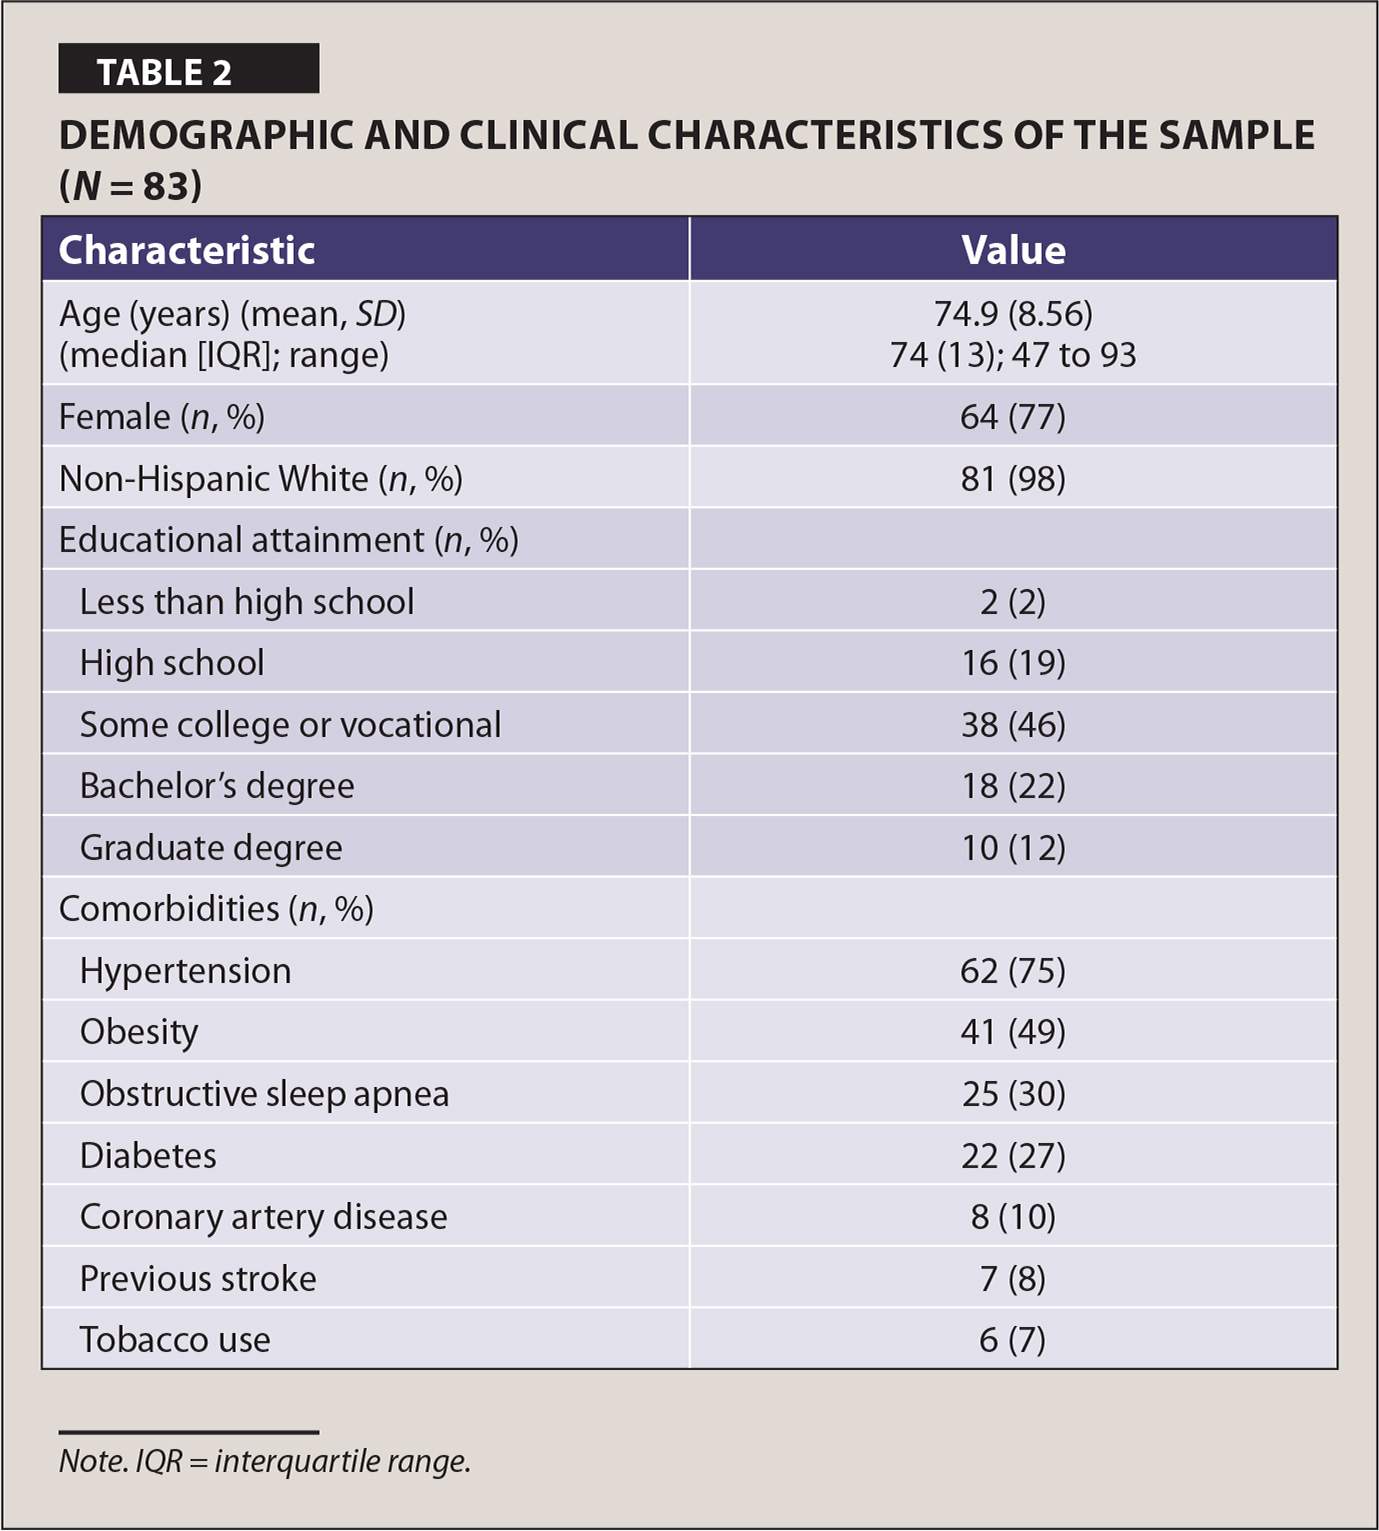 Demographic and Clinical Characteristics of the Sample (N = 83)